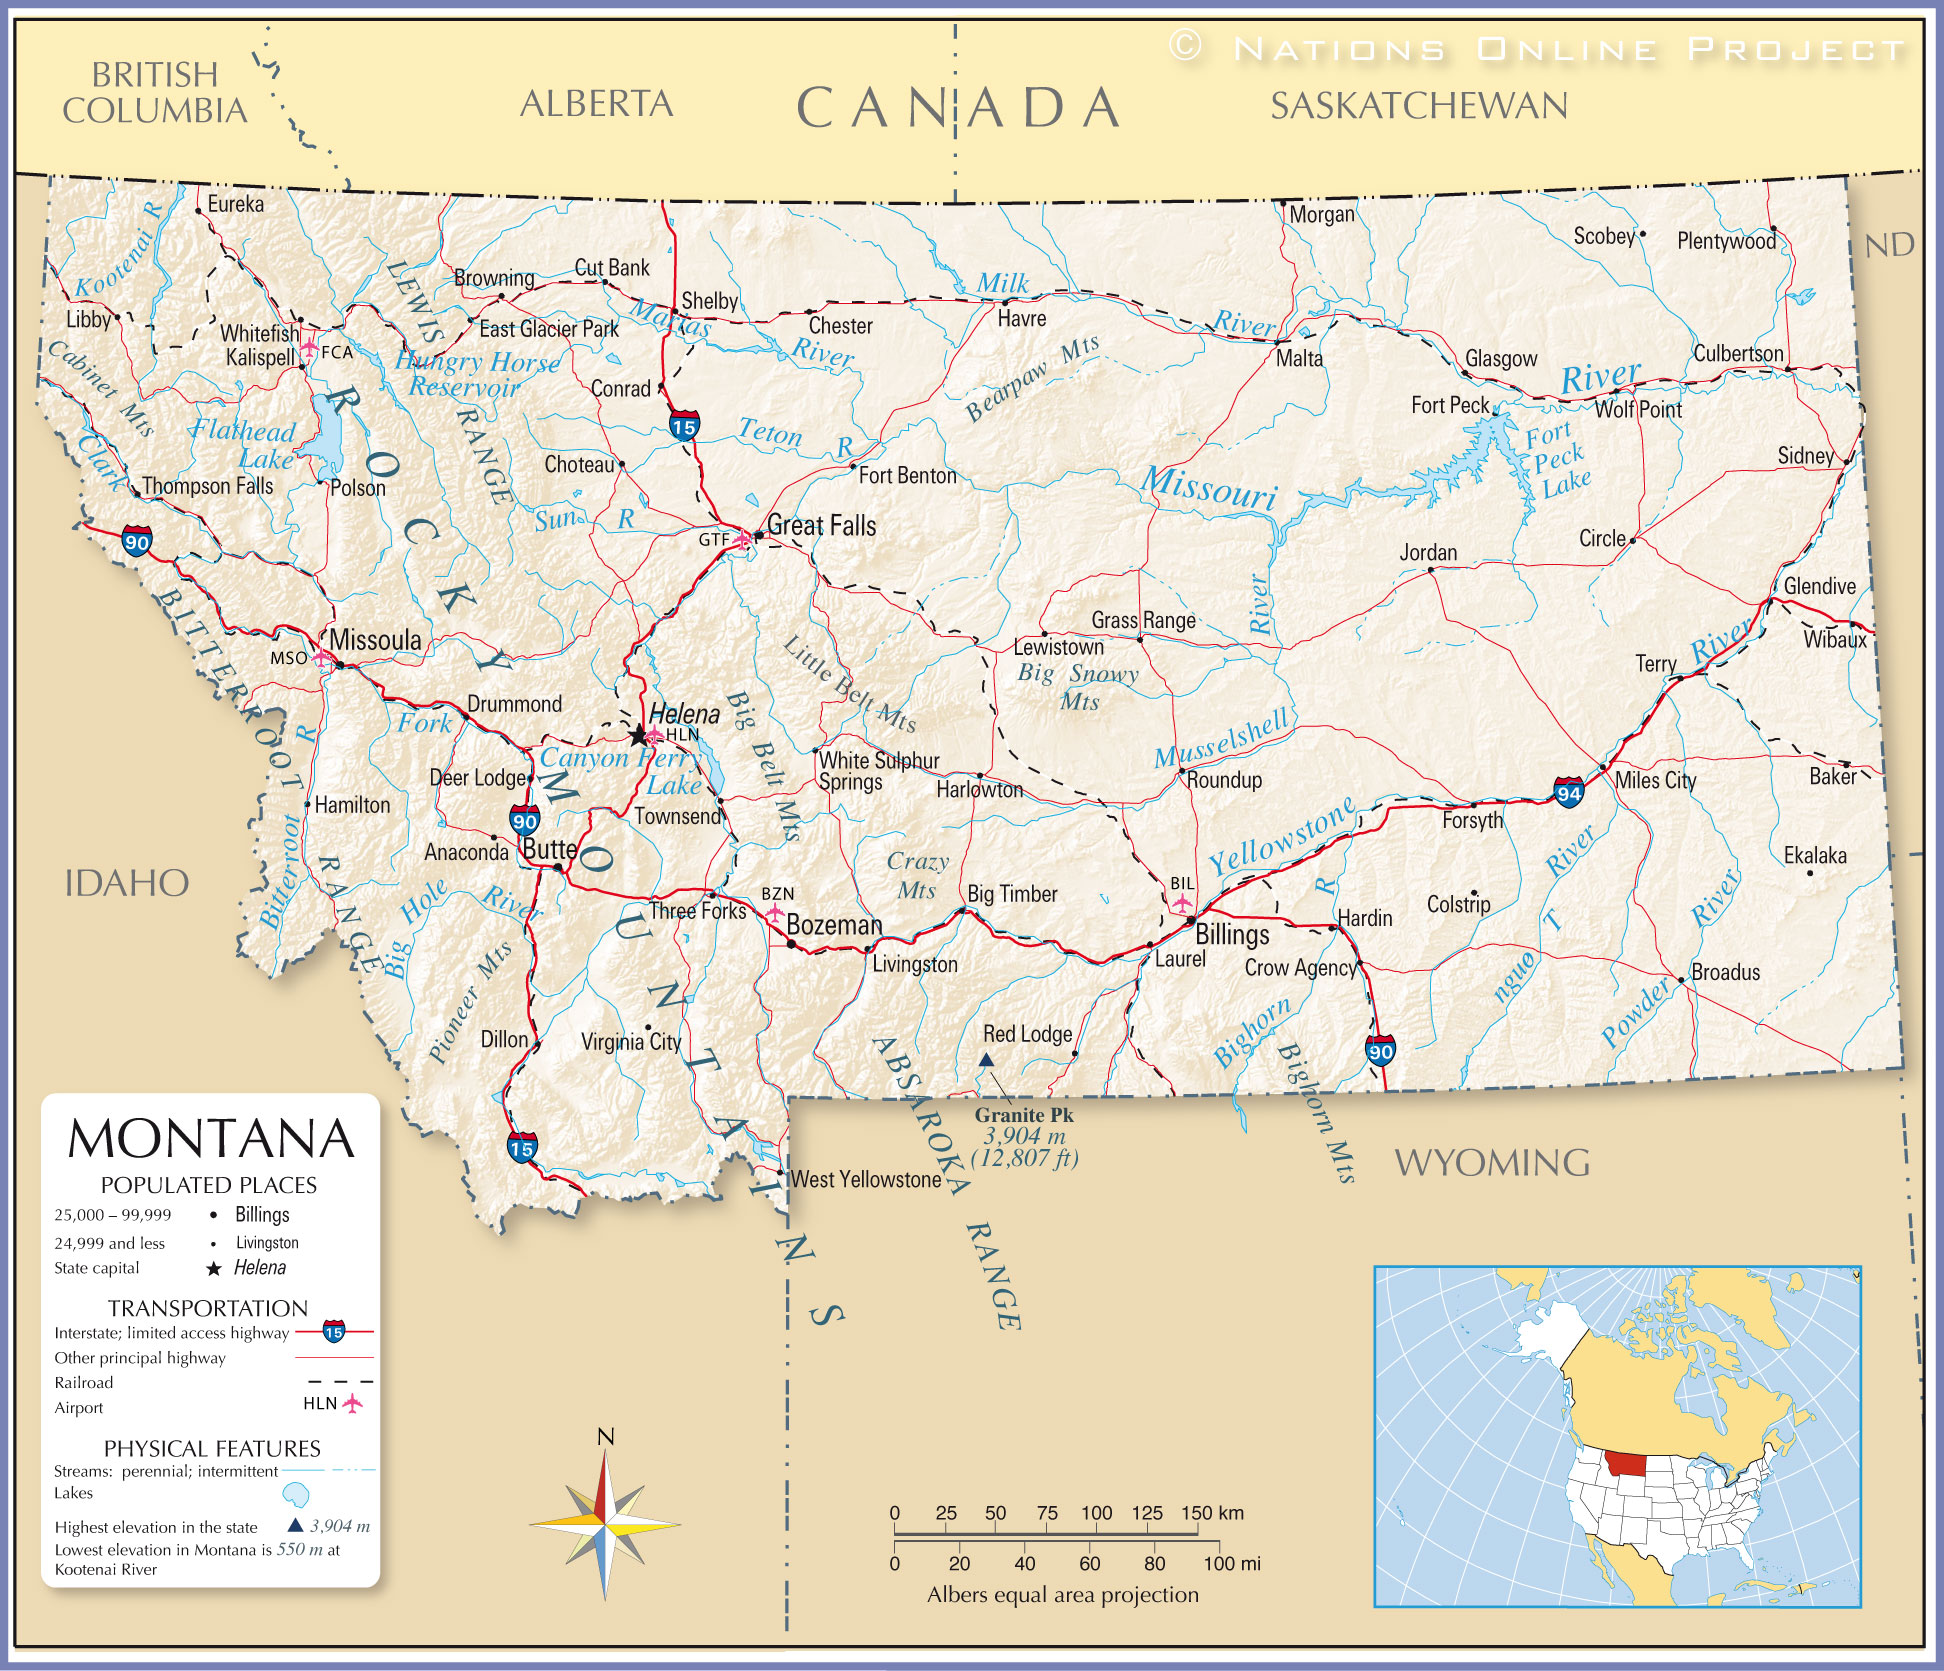 Reference Map Of Montana USA Nations Online Project - Mt map